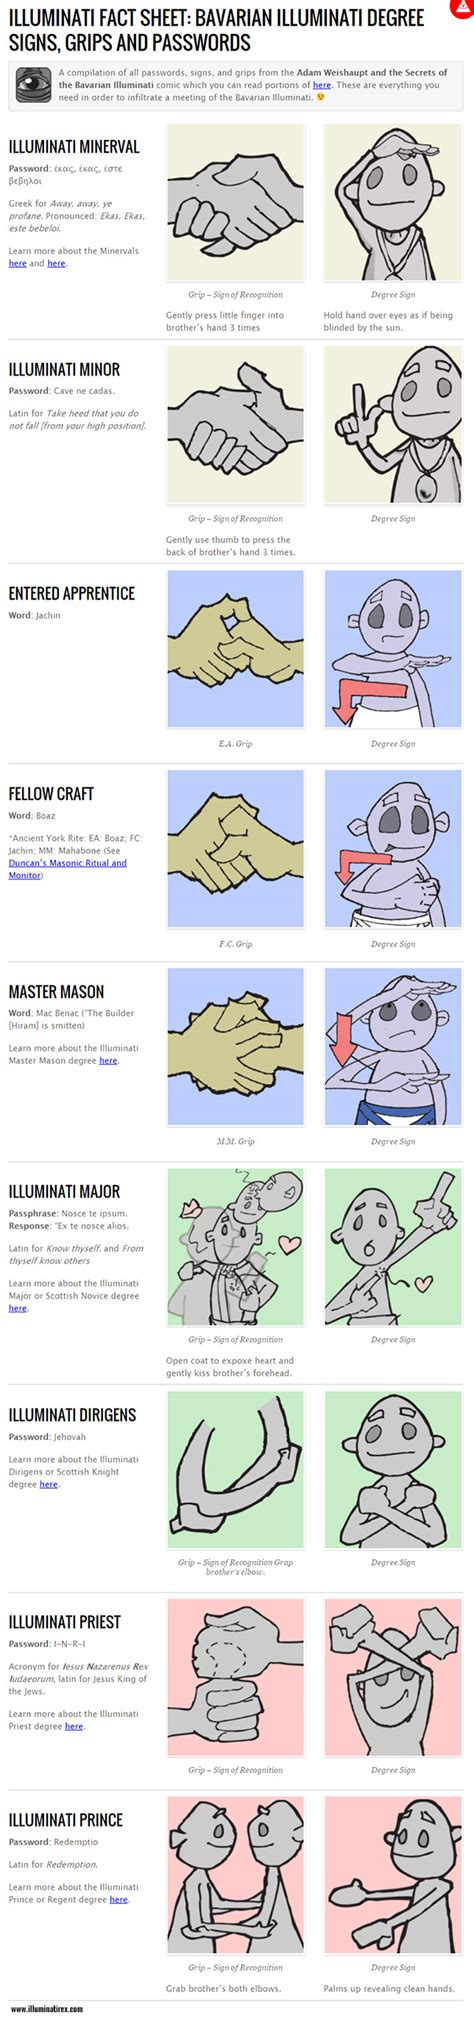 illuminati signs bavarian illuminati secret handshakes and signs